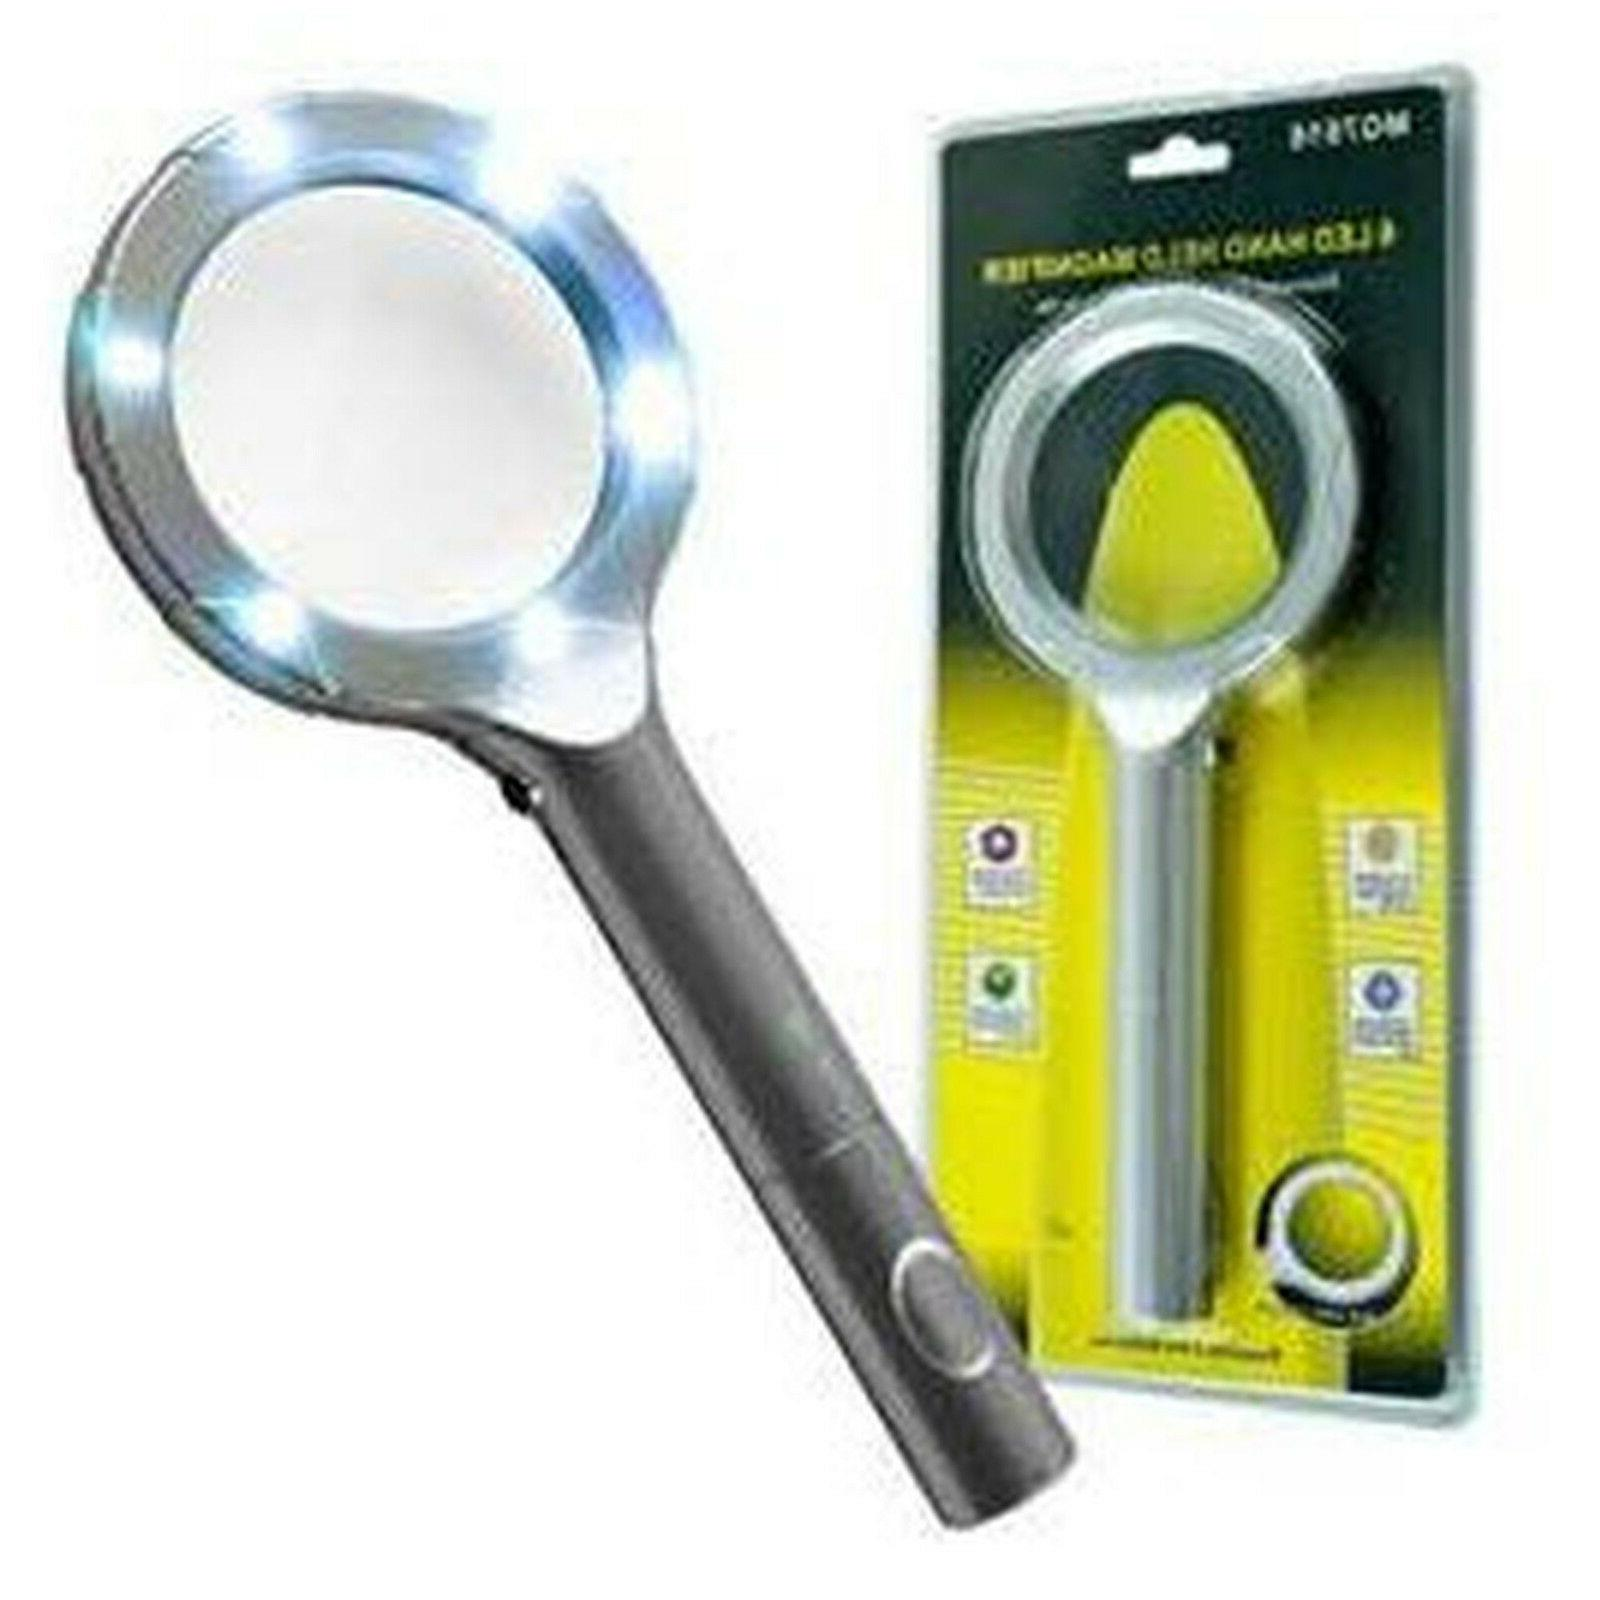 HAWK Magnifying Glass Handheld Super Bright